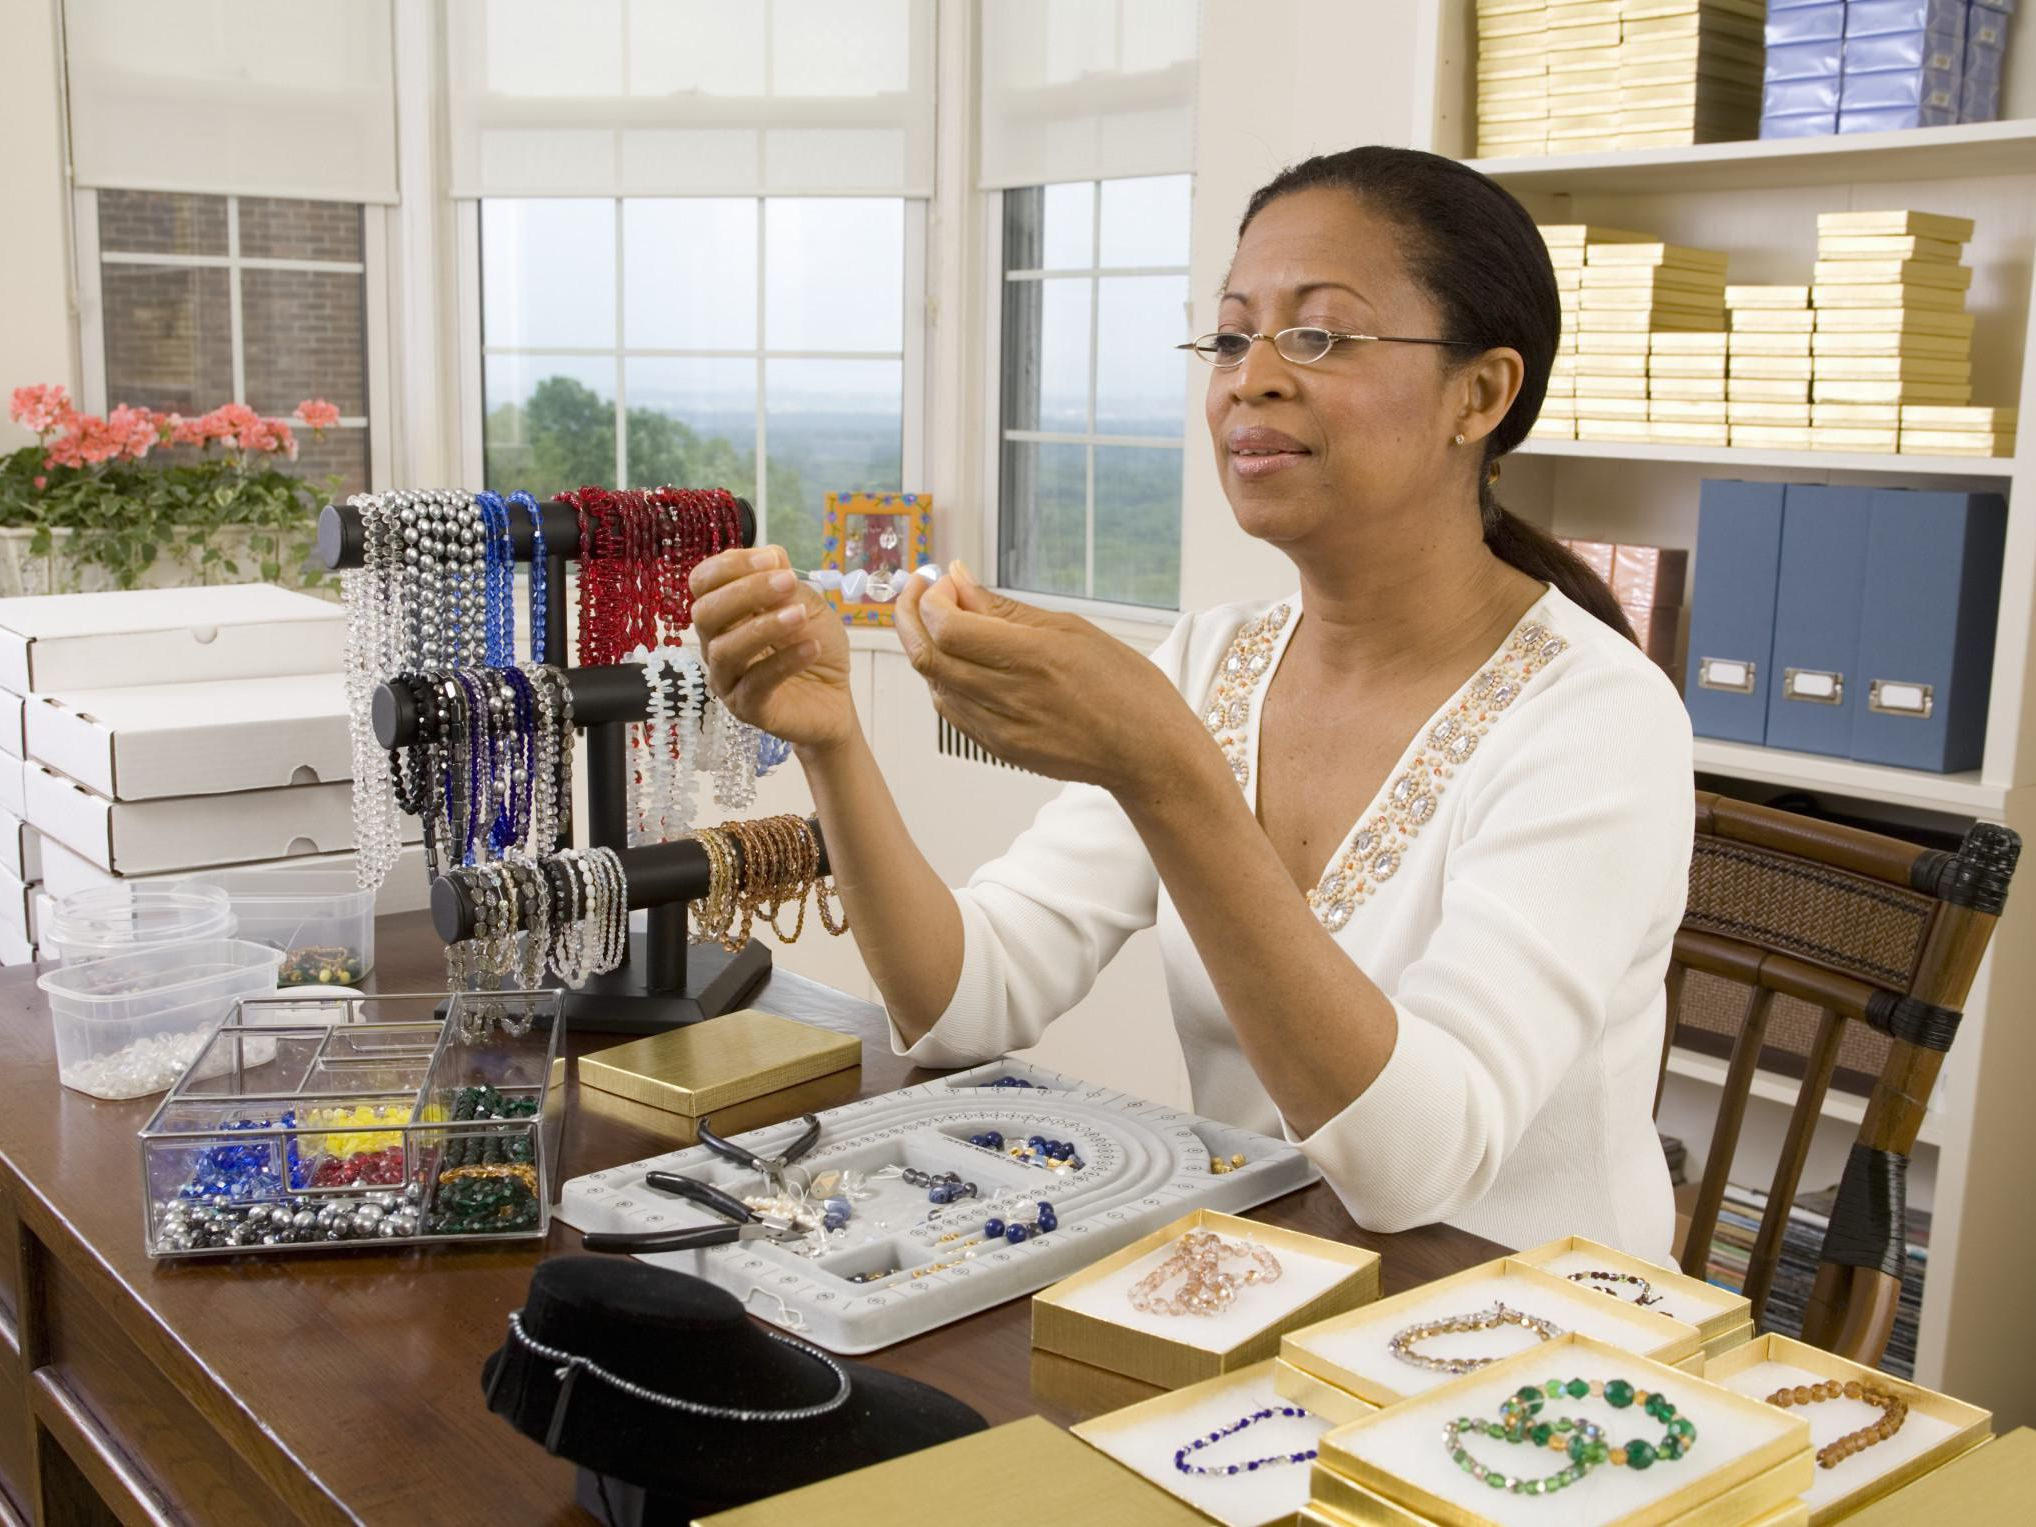 How To Design Jewelry For A Career